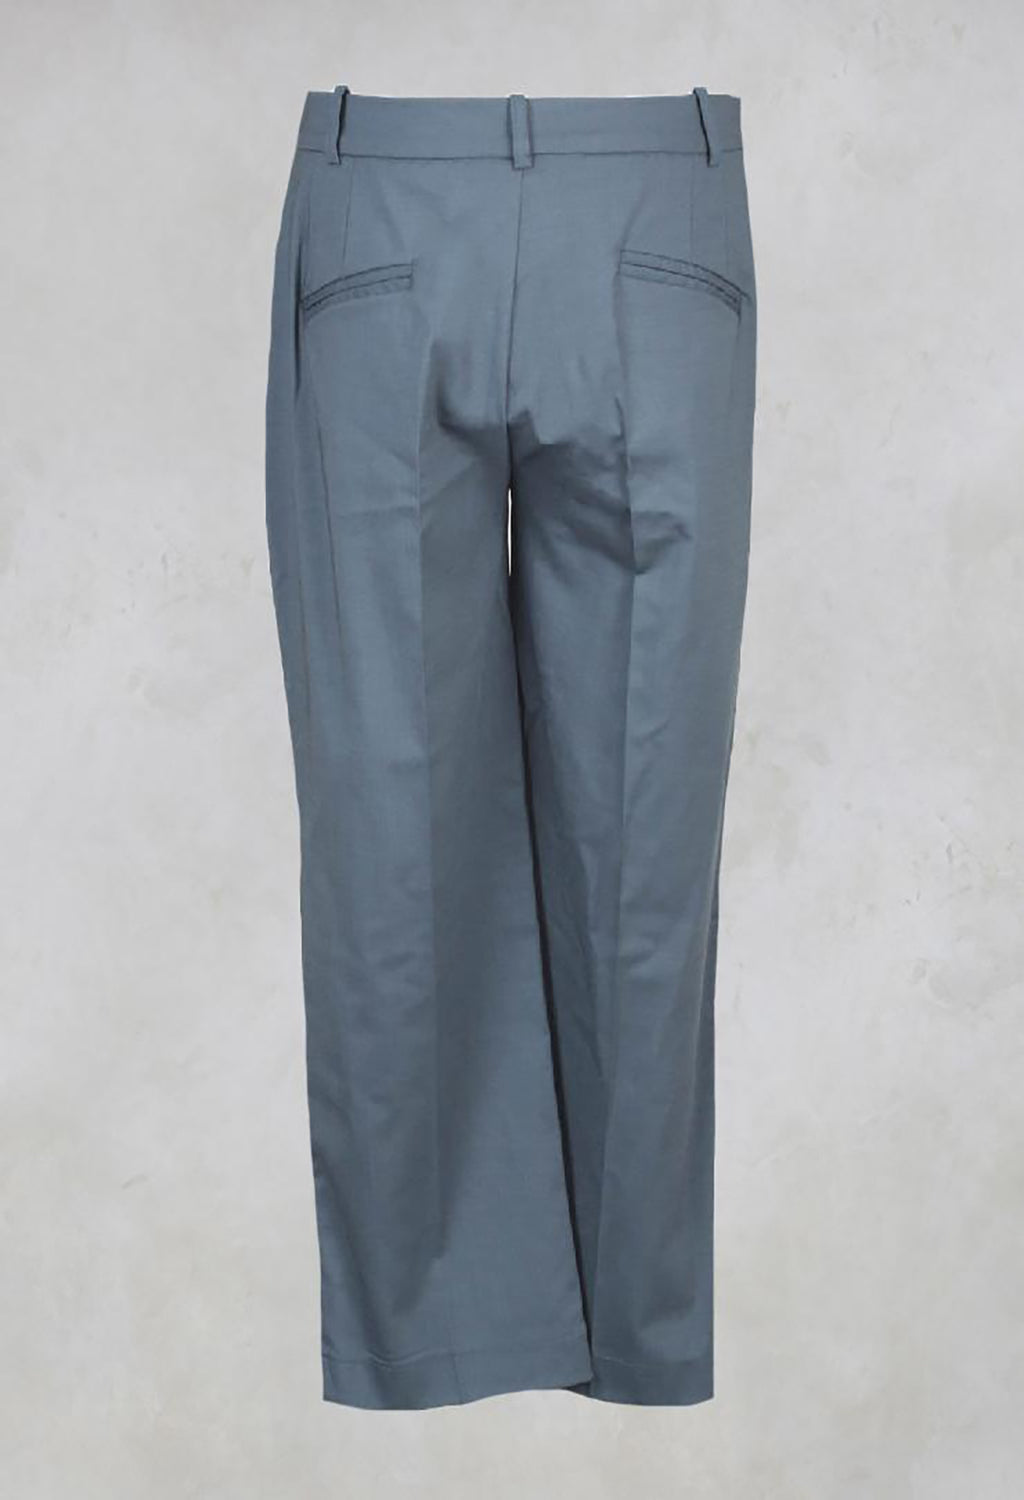 Trousers with Button at Waistband in Lagoon Blue